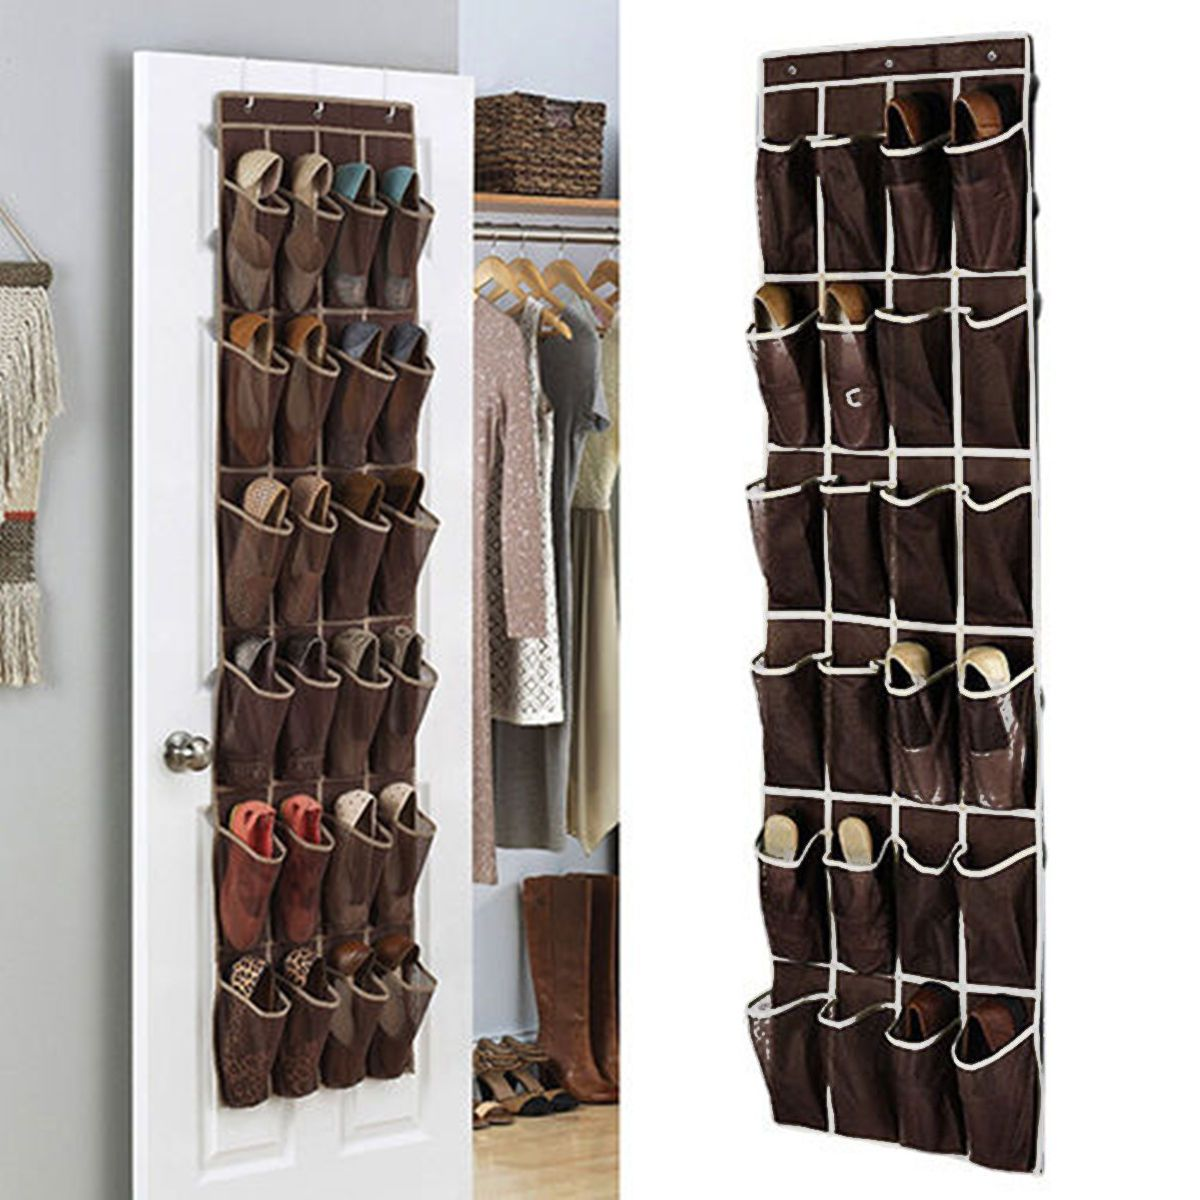 pockets over door hanging shoes organizer mesh storage rack